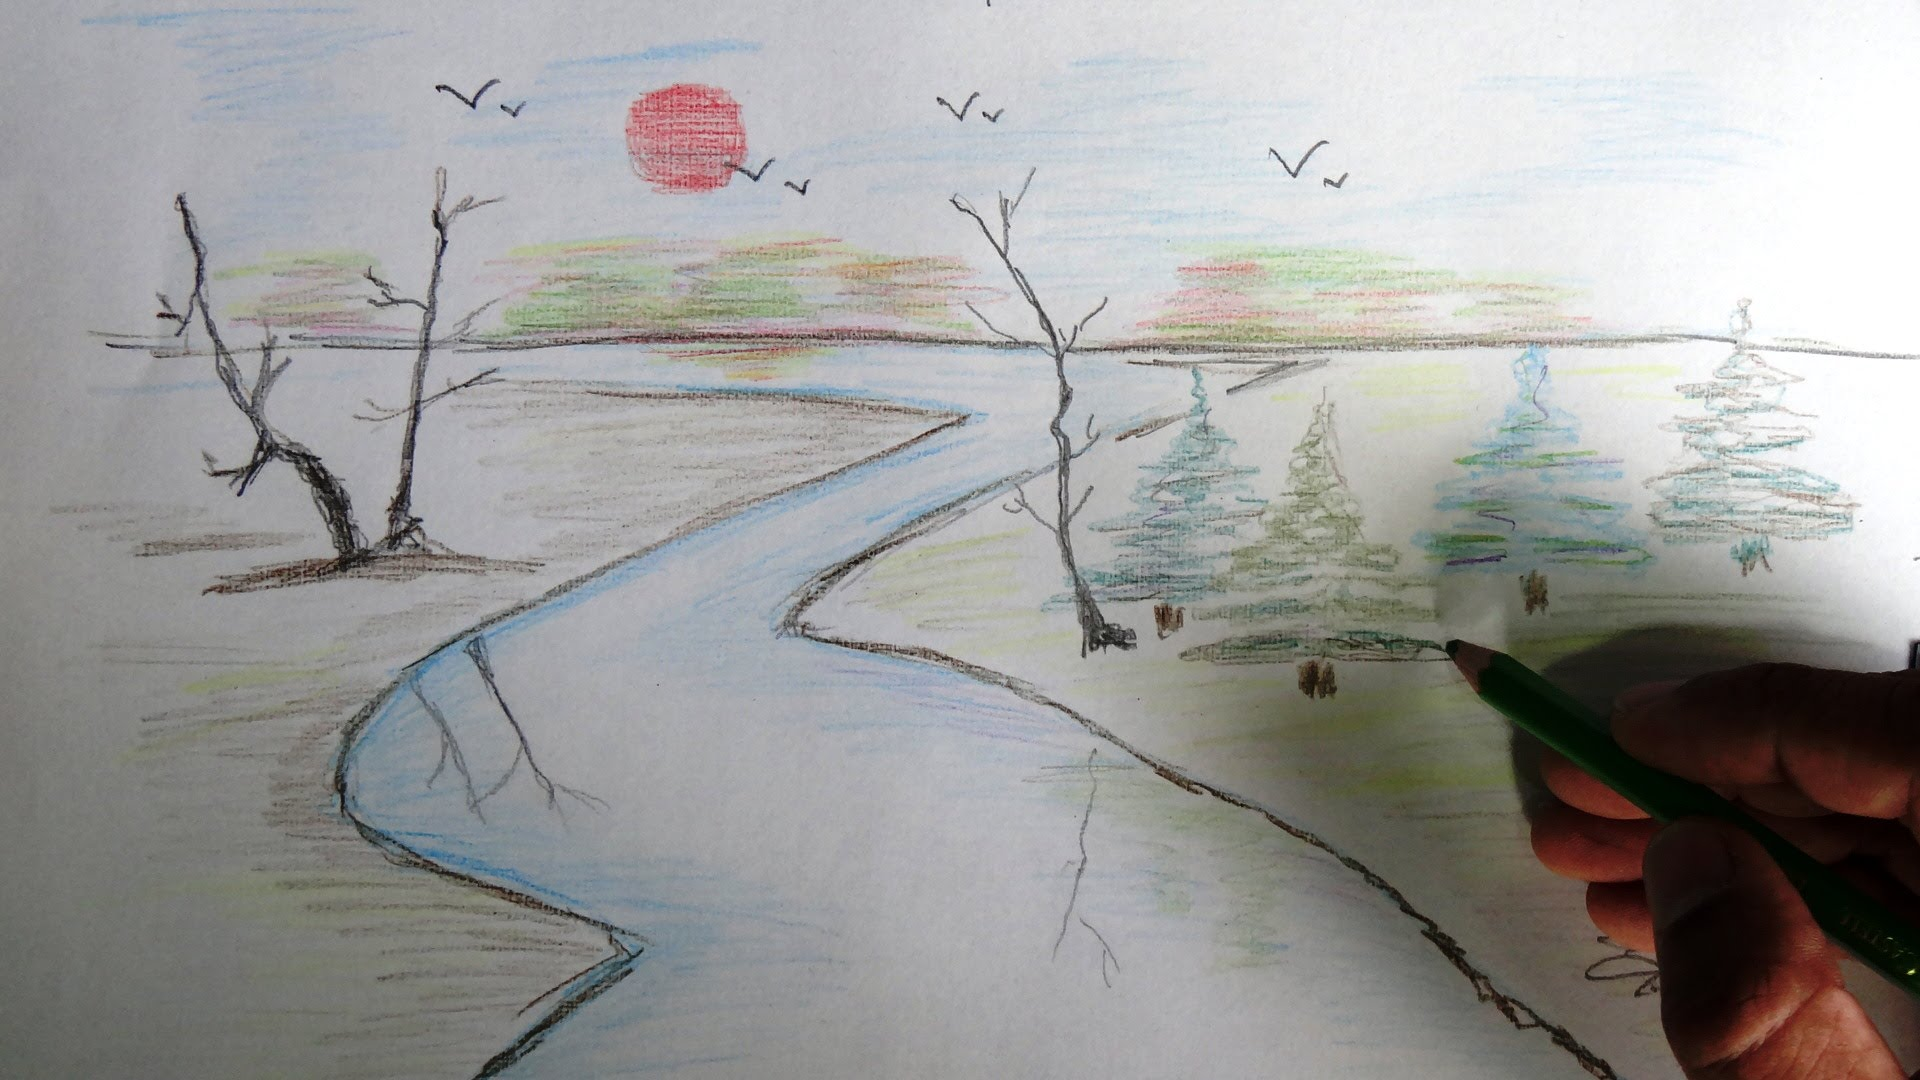 Drawn scenery creative How pencil Scenery draw to